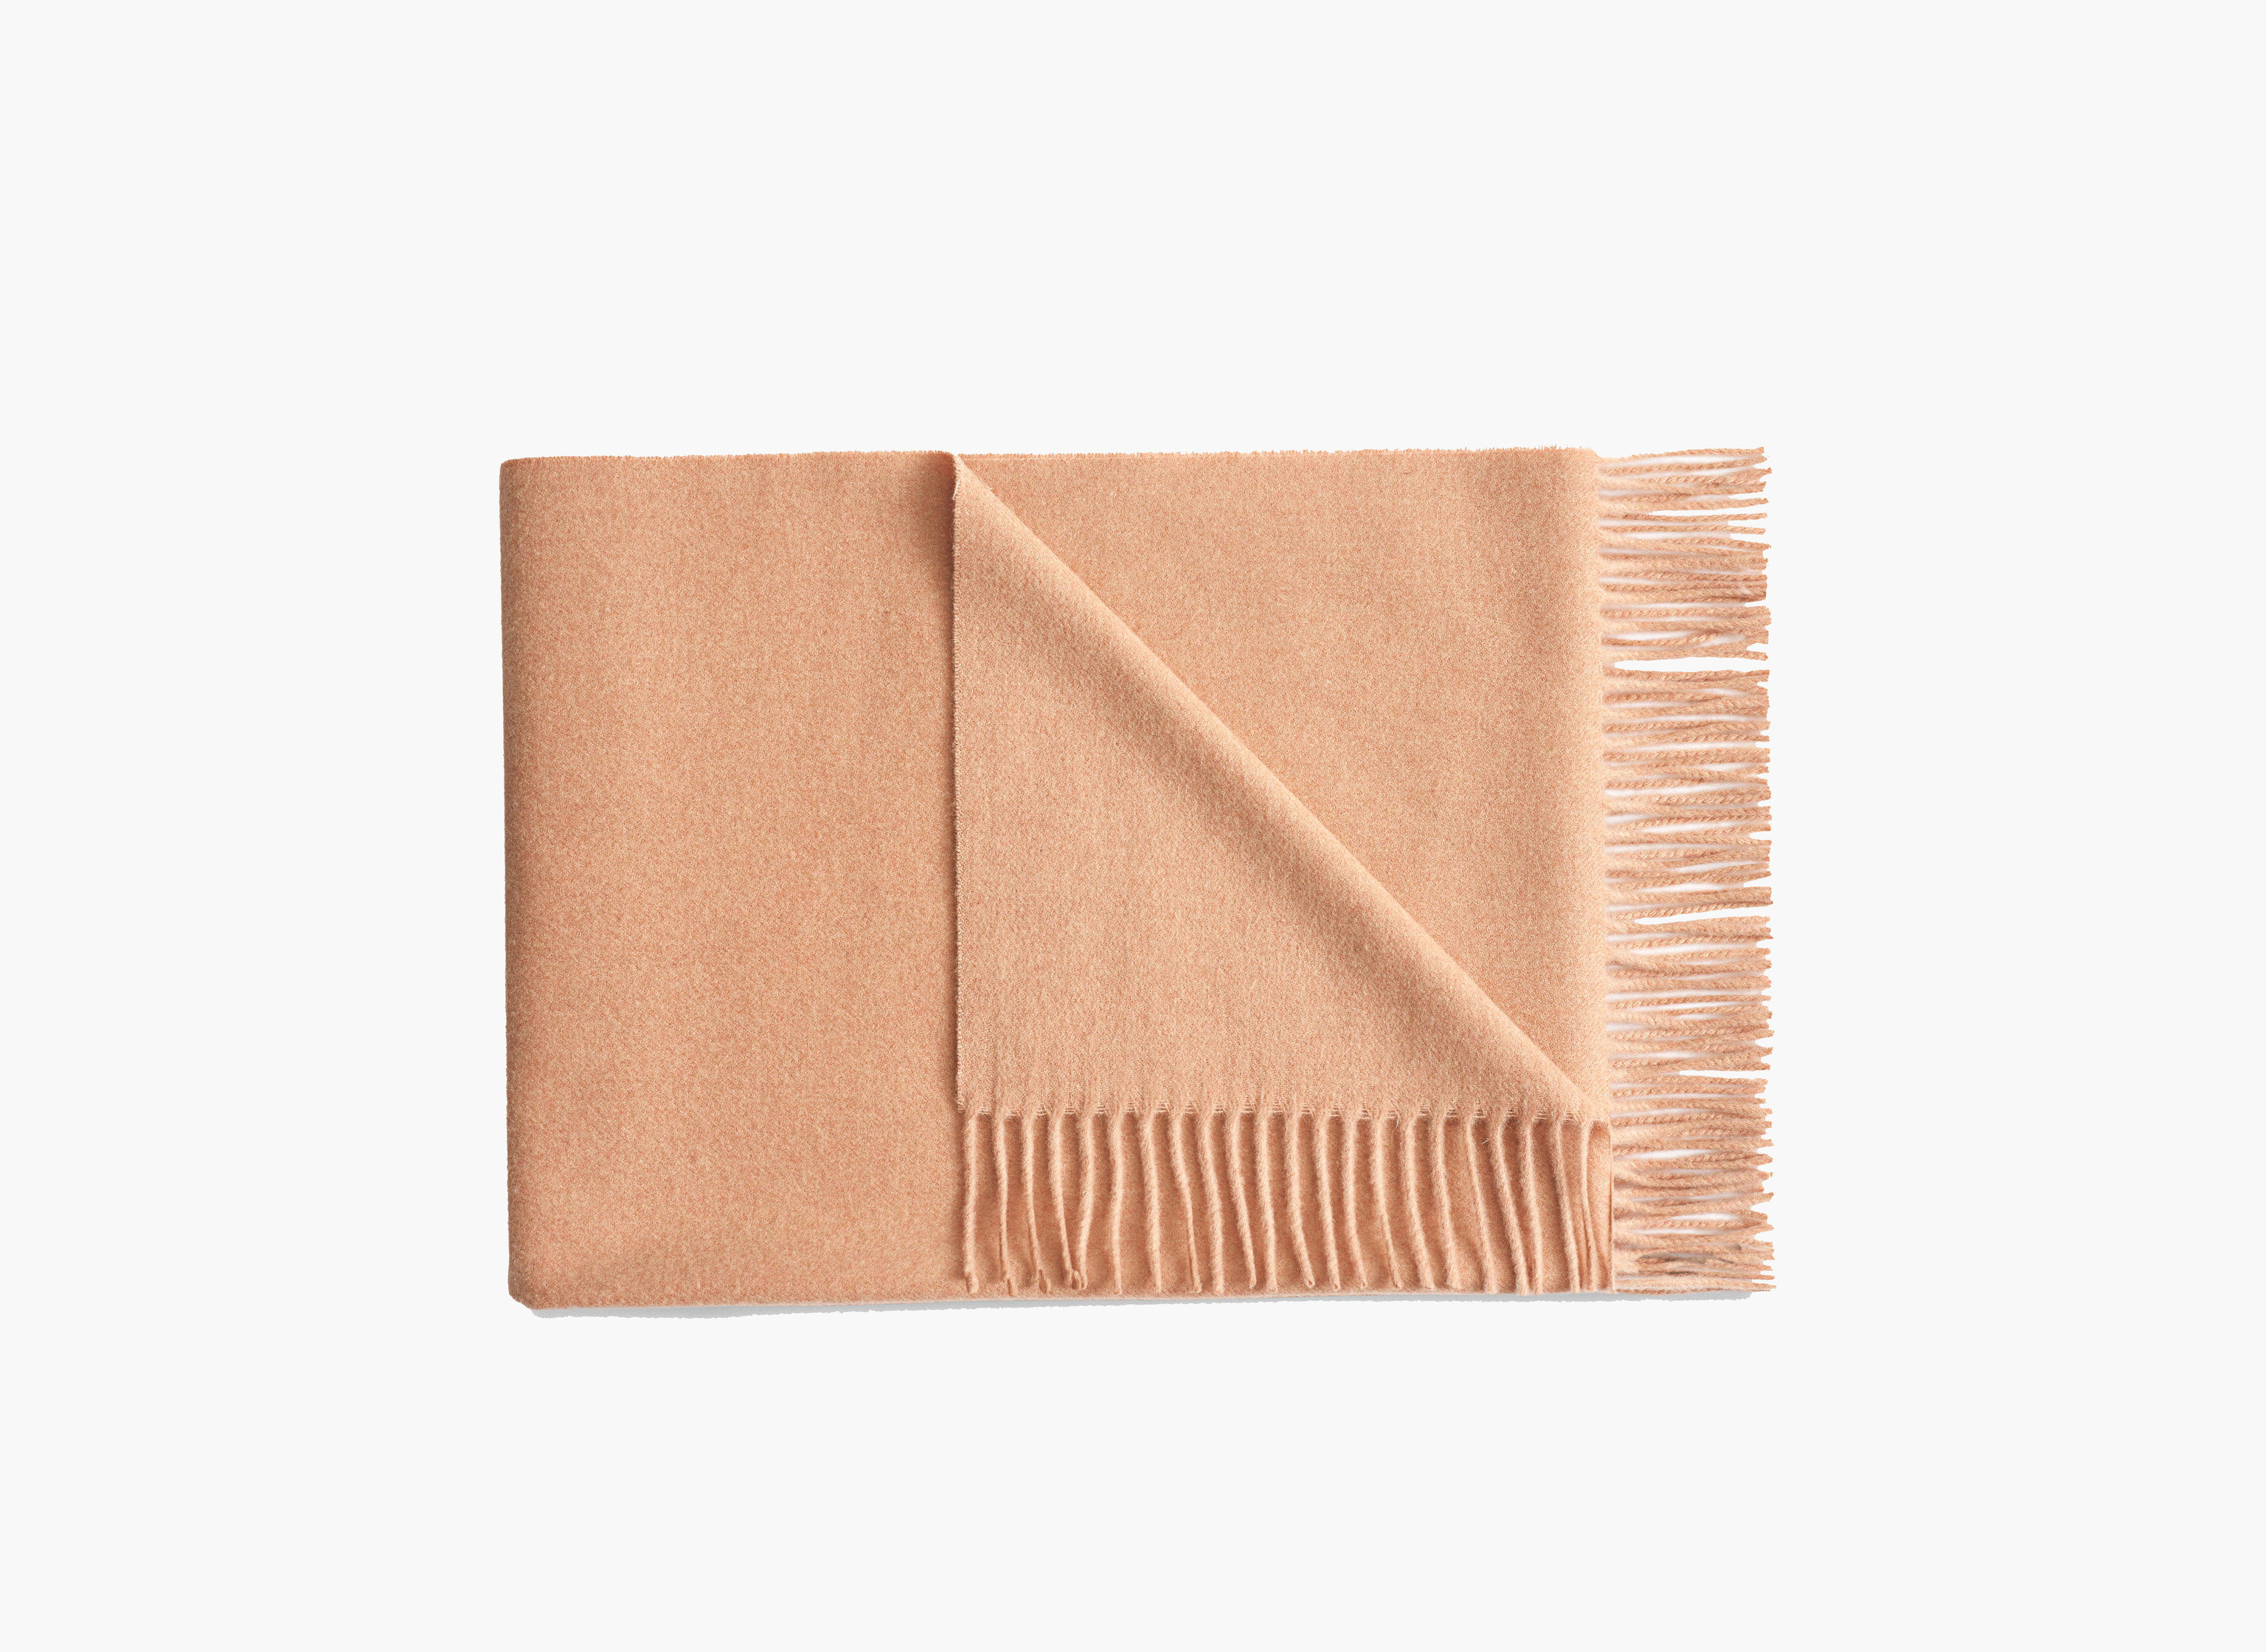 Offbeat brown accessory beige textile fashion accessory leather tablecloth material wool rectangle case